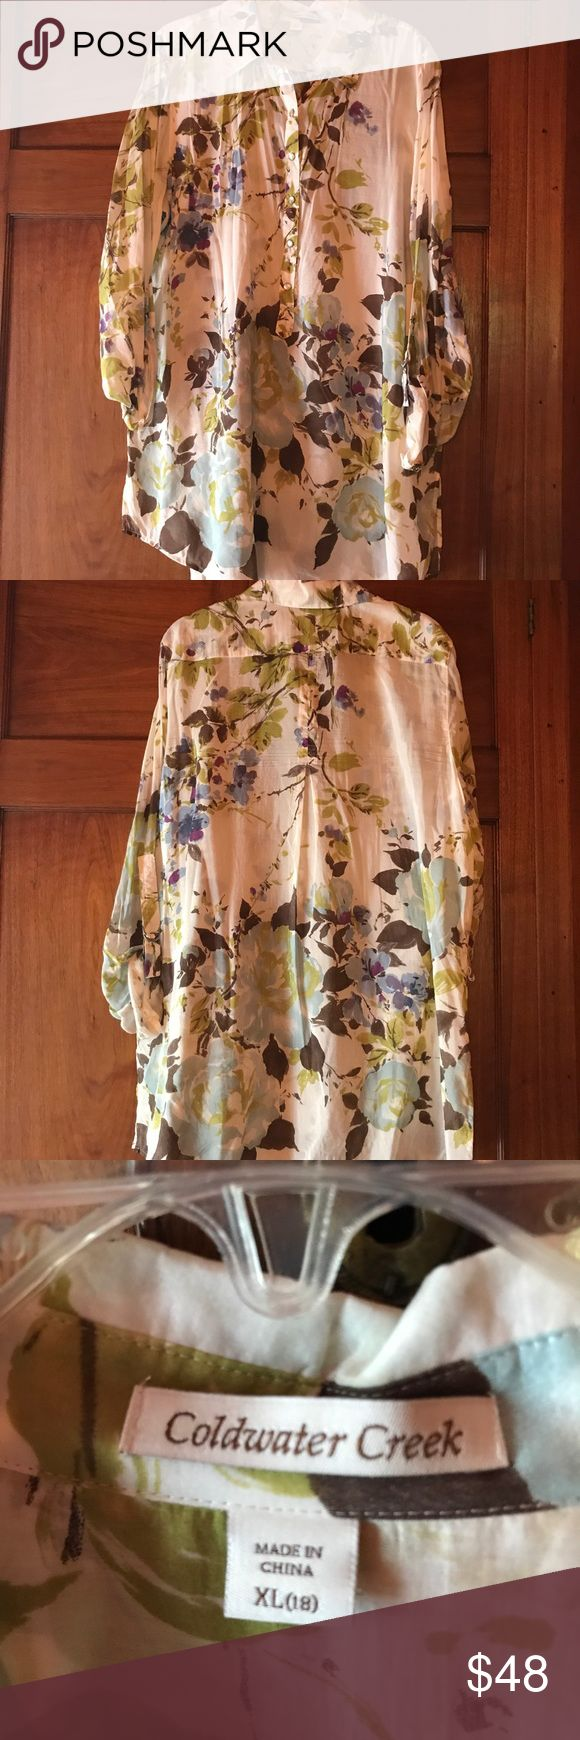 Coldwater creek floral print voile tunic XL NWT Coldwater creek floral print voile tunic size XL or size18. New with tags.Tunic has brown, aqua, lime, blue, and purple flowers on a cream background. The shirt has snap buttons that go halfway down the garment. The sleeves can be rolled up and fastened with a D ring. The government has a split him. There are belt loops but no belt. Please check garment for measurements. Thanks for visiting my closet! Coldwater Creek Tops Tunics